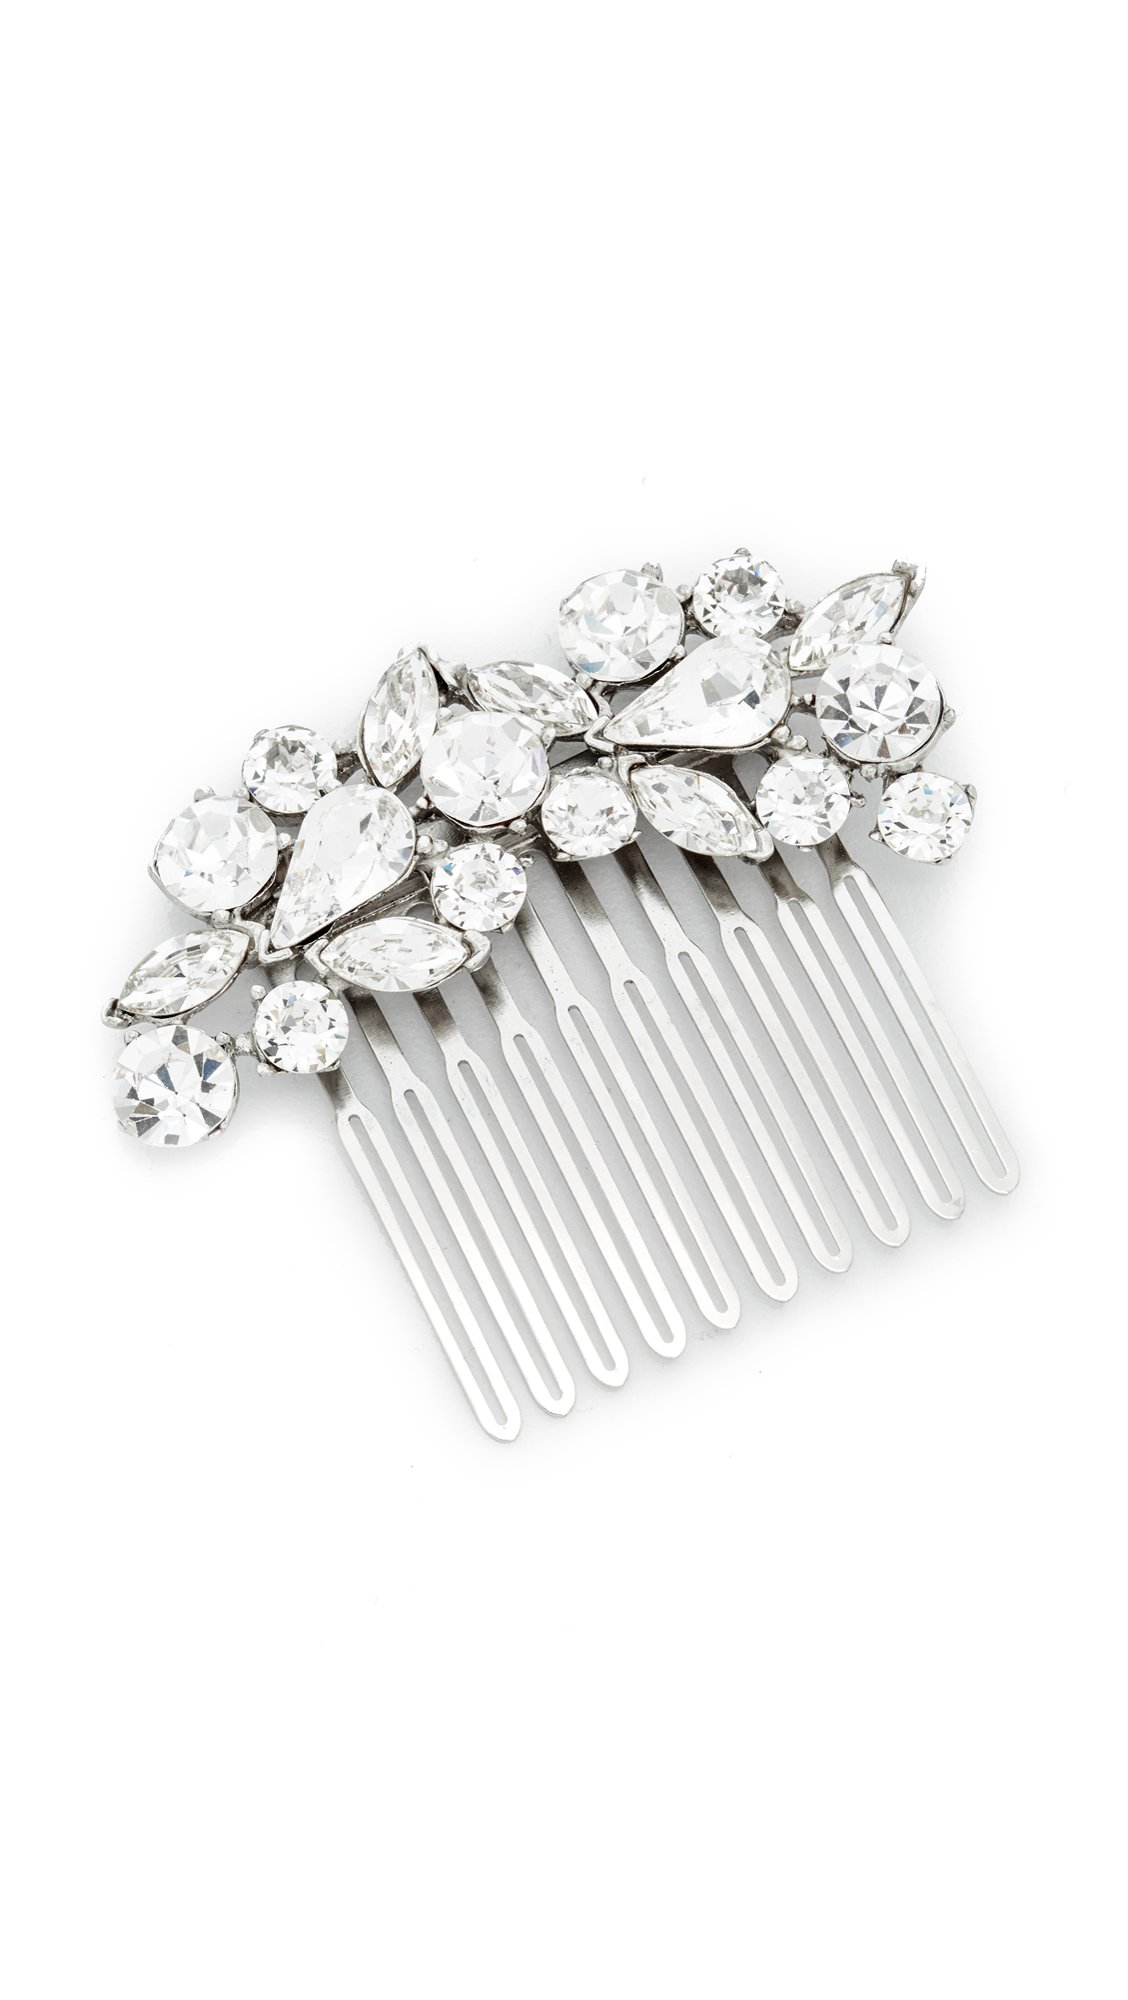 Ben-Amun Women's Crystal Cluster Hair Comb, Clear/Silver, One Size by Ben-Amun Jewelry